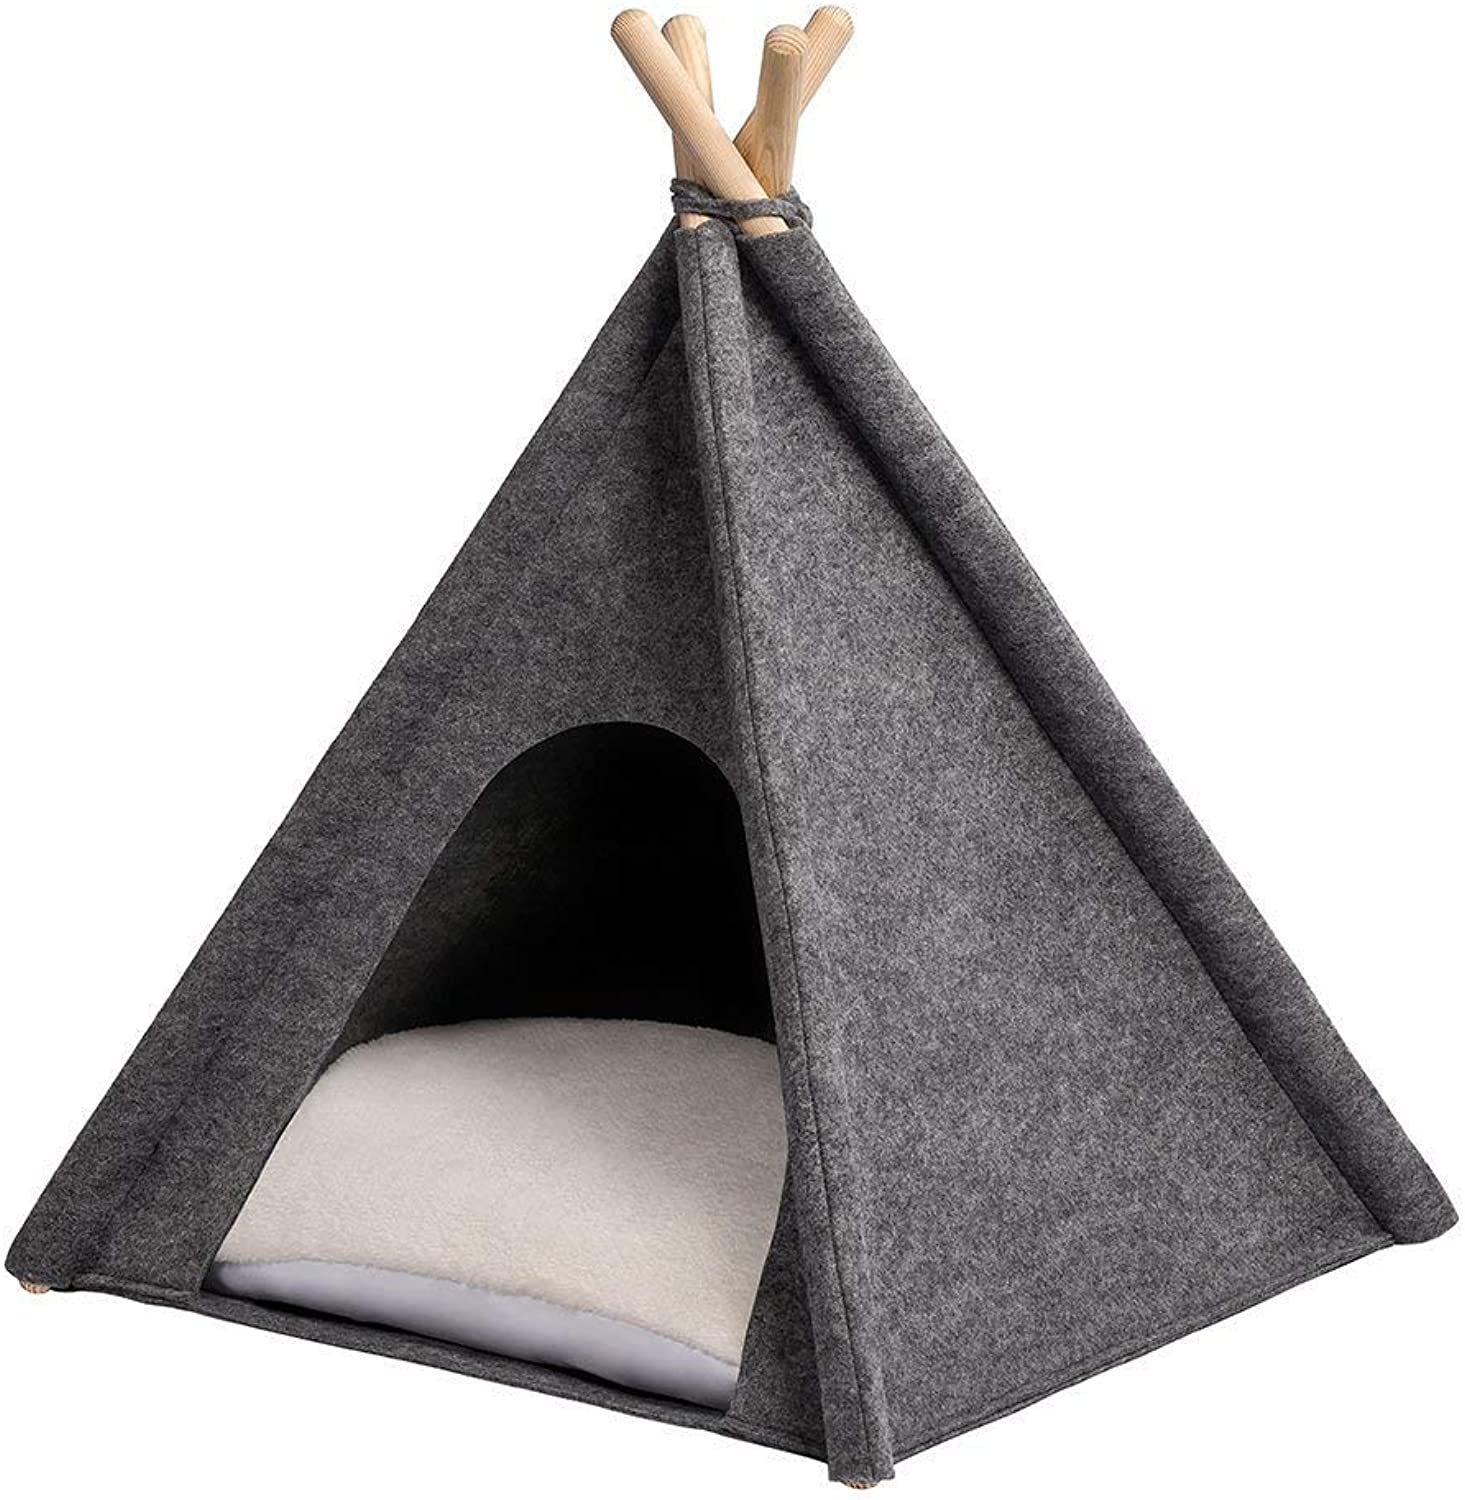 ANIMALY Tipi is A Pet Tent of 24  x 28  (Height), a Tent for Dogs & Cats, A Bed, A House, A Tipi for Dogs & Cats with A Removable Pillow, Attractive Look.